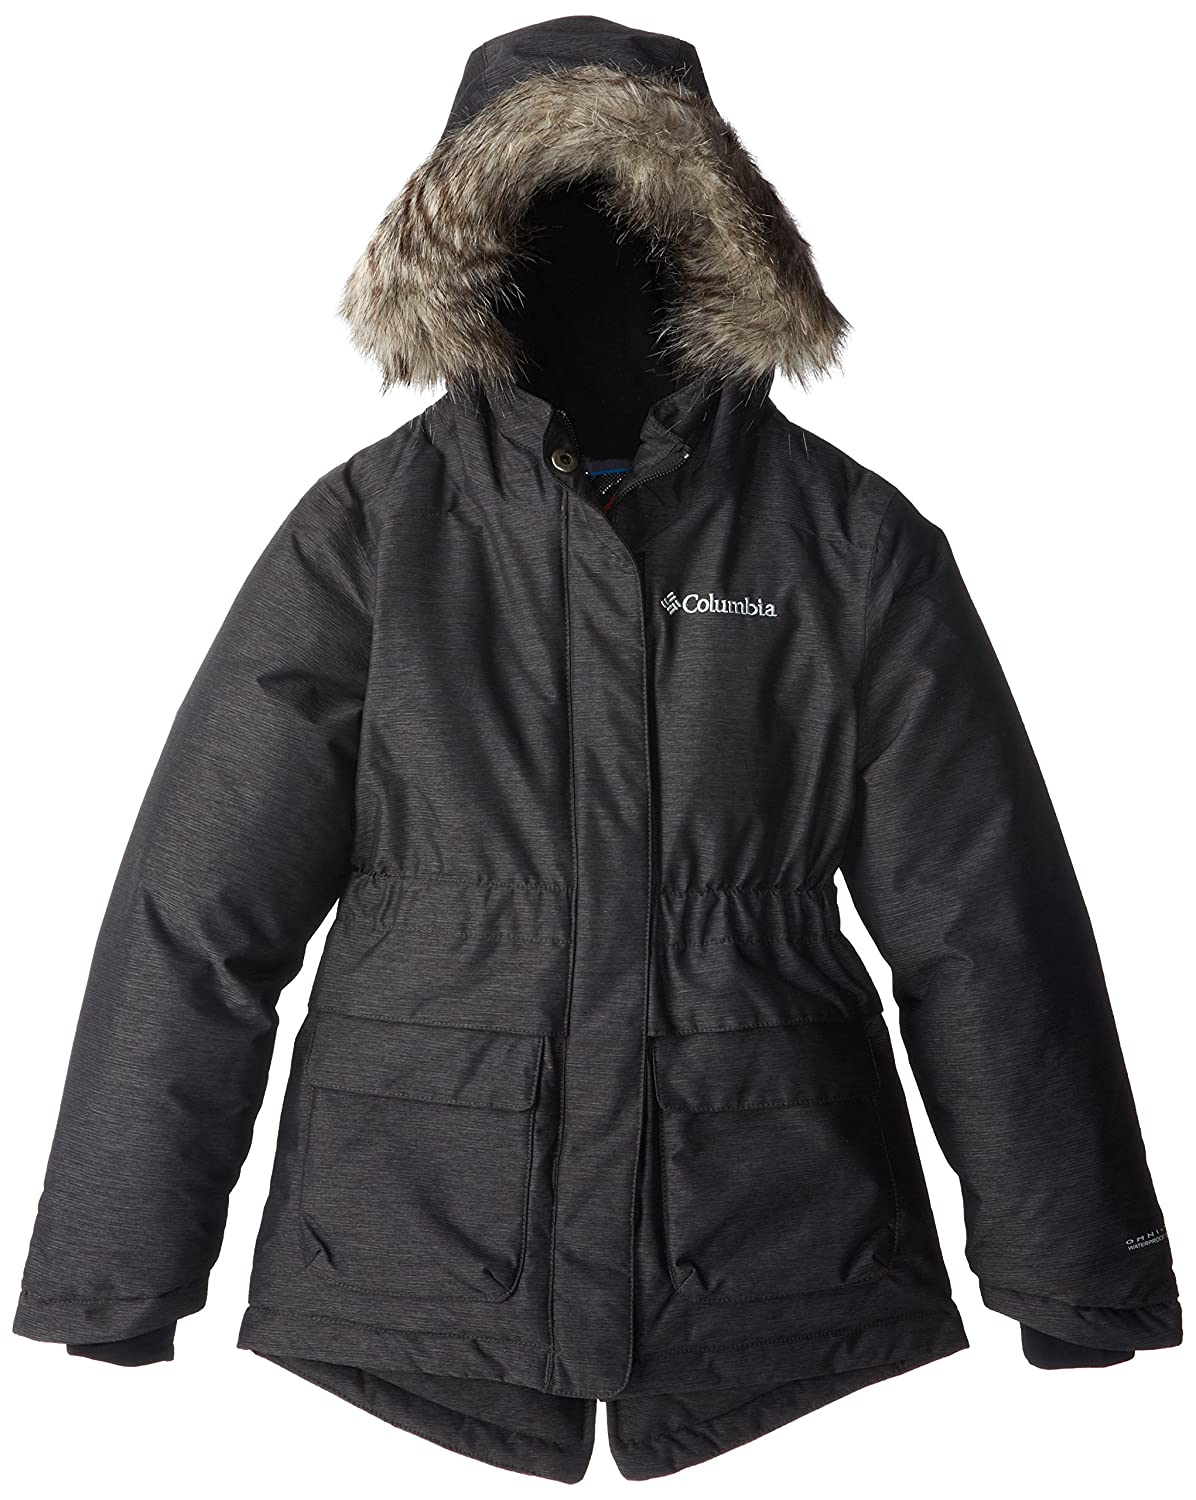 Columbia Kinder Jacke Nordic Strider Jacket